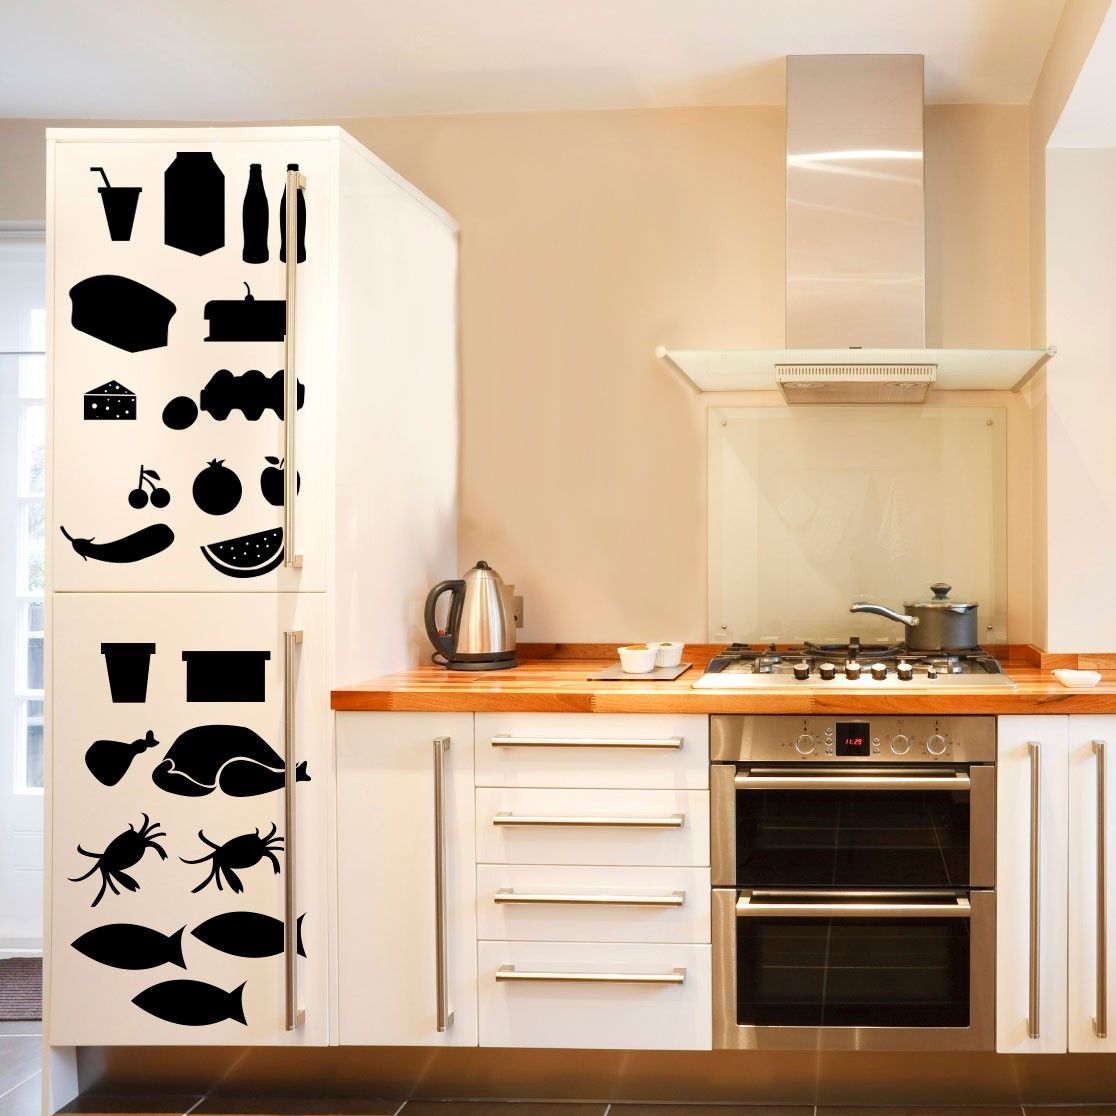 Refrigerator X-RAY - Vinyl Wall Art Decal for Homes, Offices, Kids ...